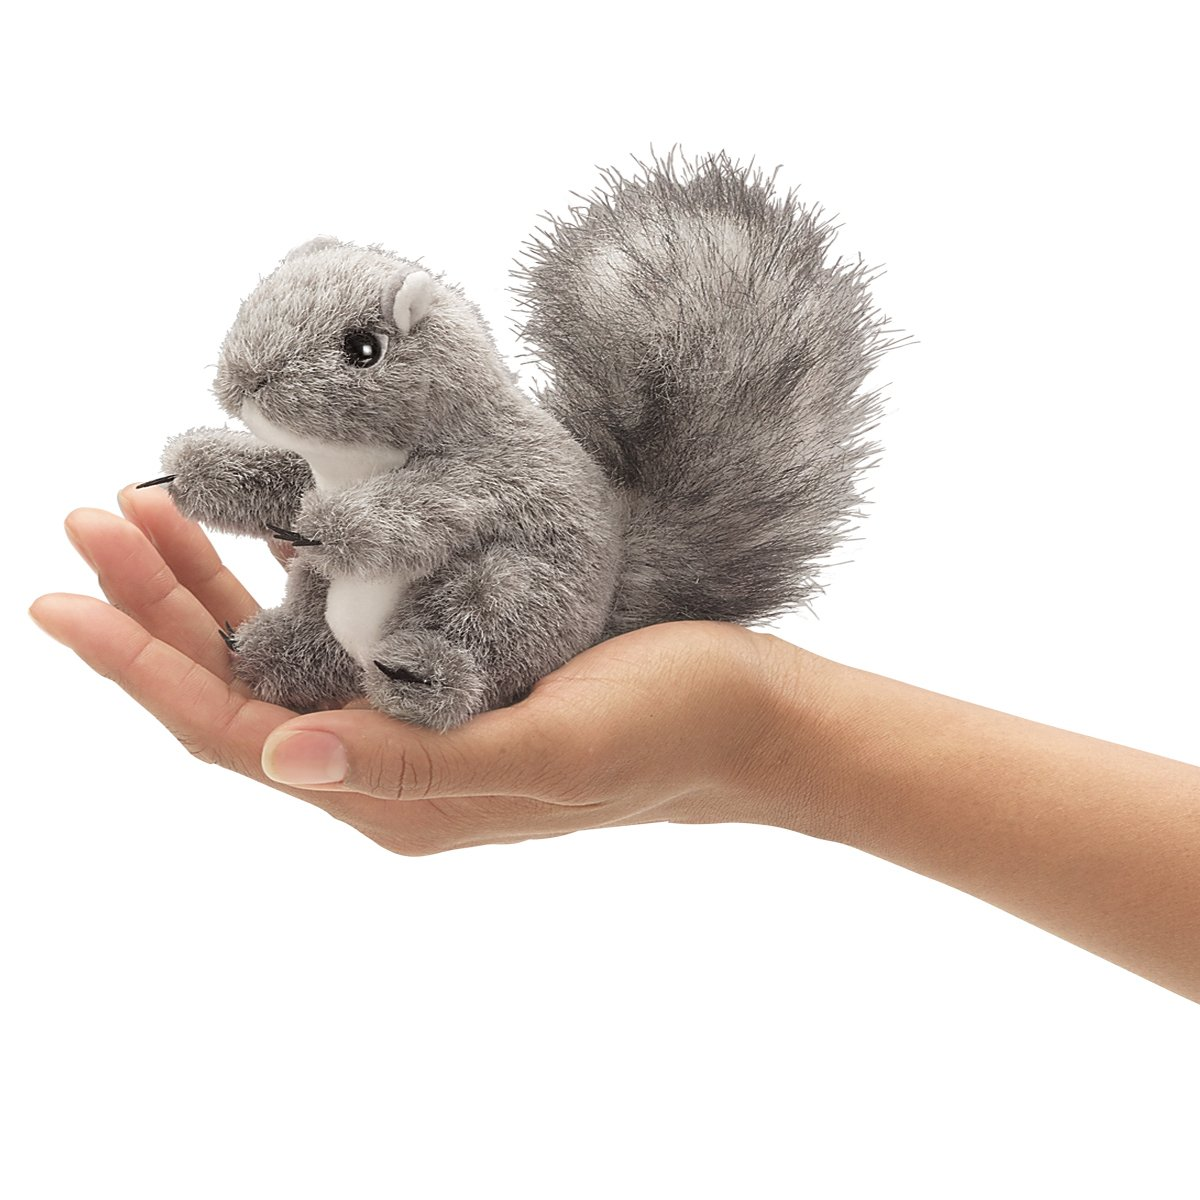 Folkmanis Mini Gray Squirrel Finger Puppet Folkmanis Puppets 2648